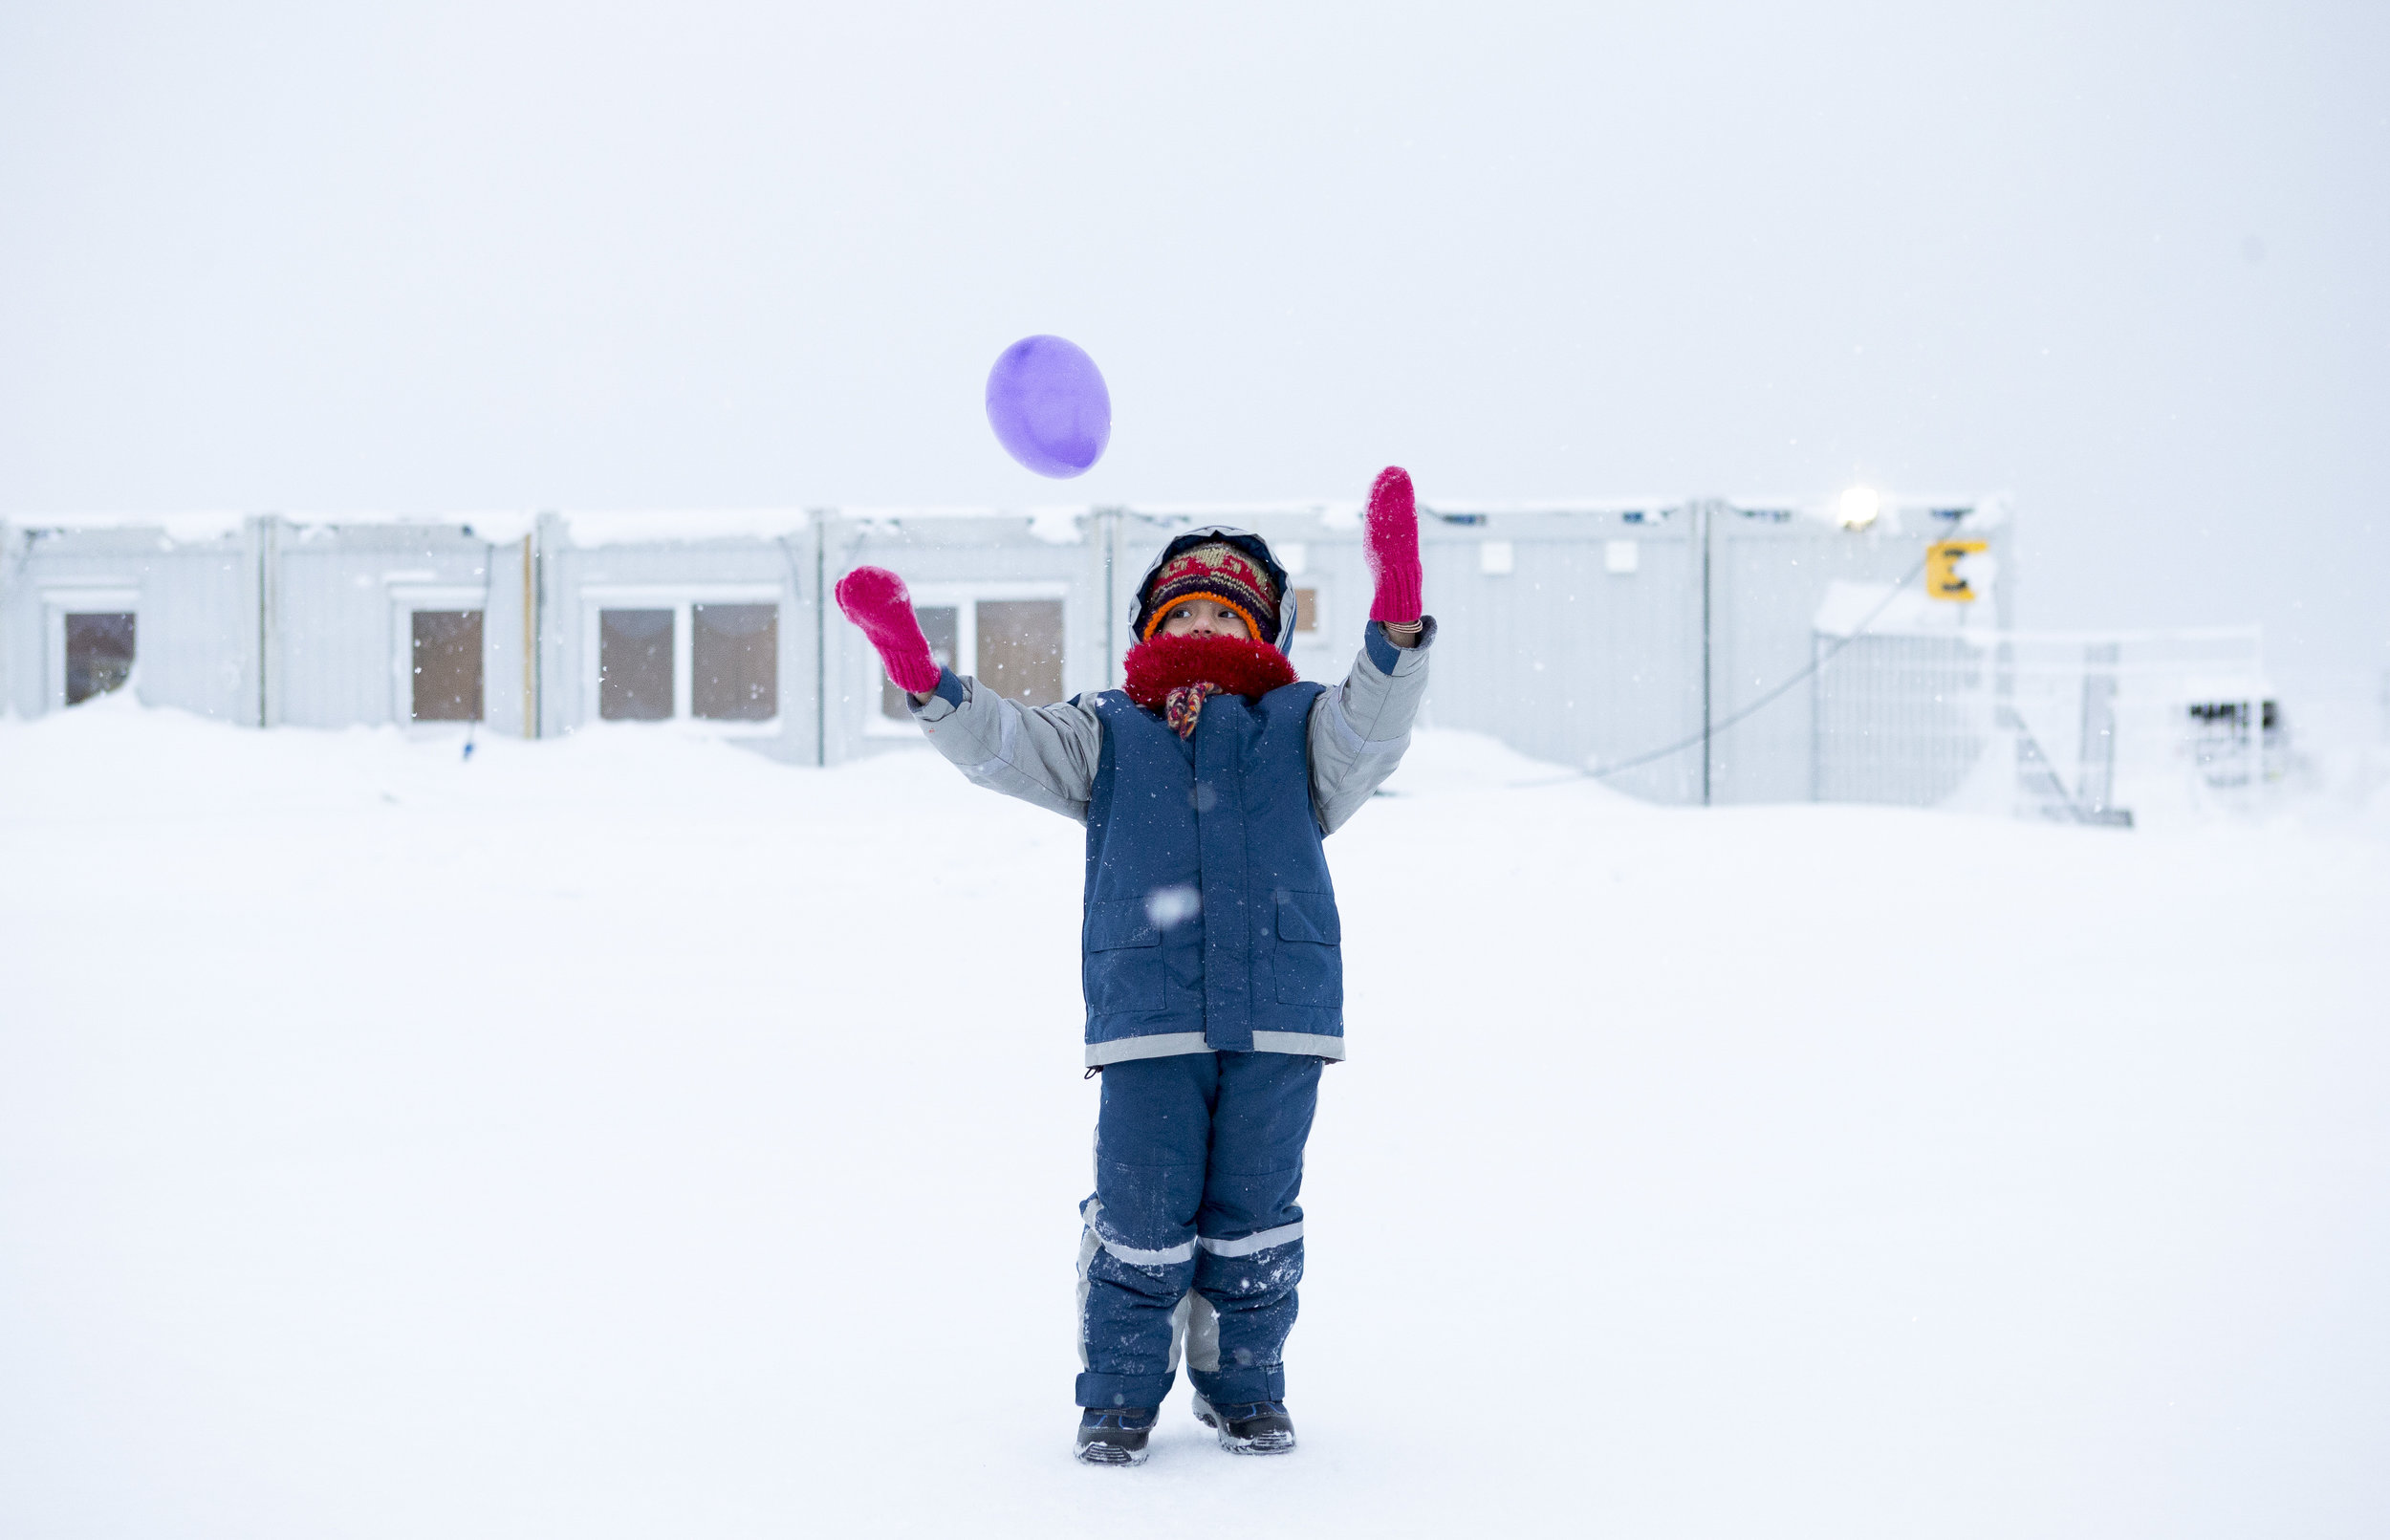 Happily unaware of politics she has been a part of, five year old Zeynep from Afganhestan are playing behind fences in the Western camp, 18 kilometers from Russia.